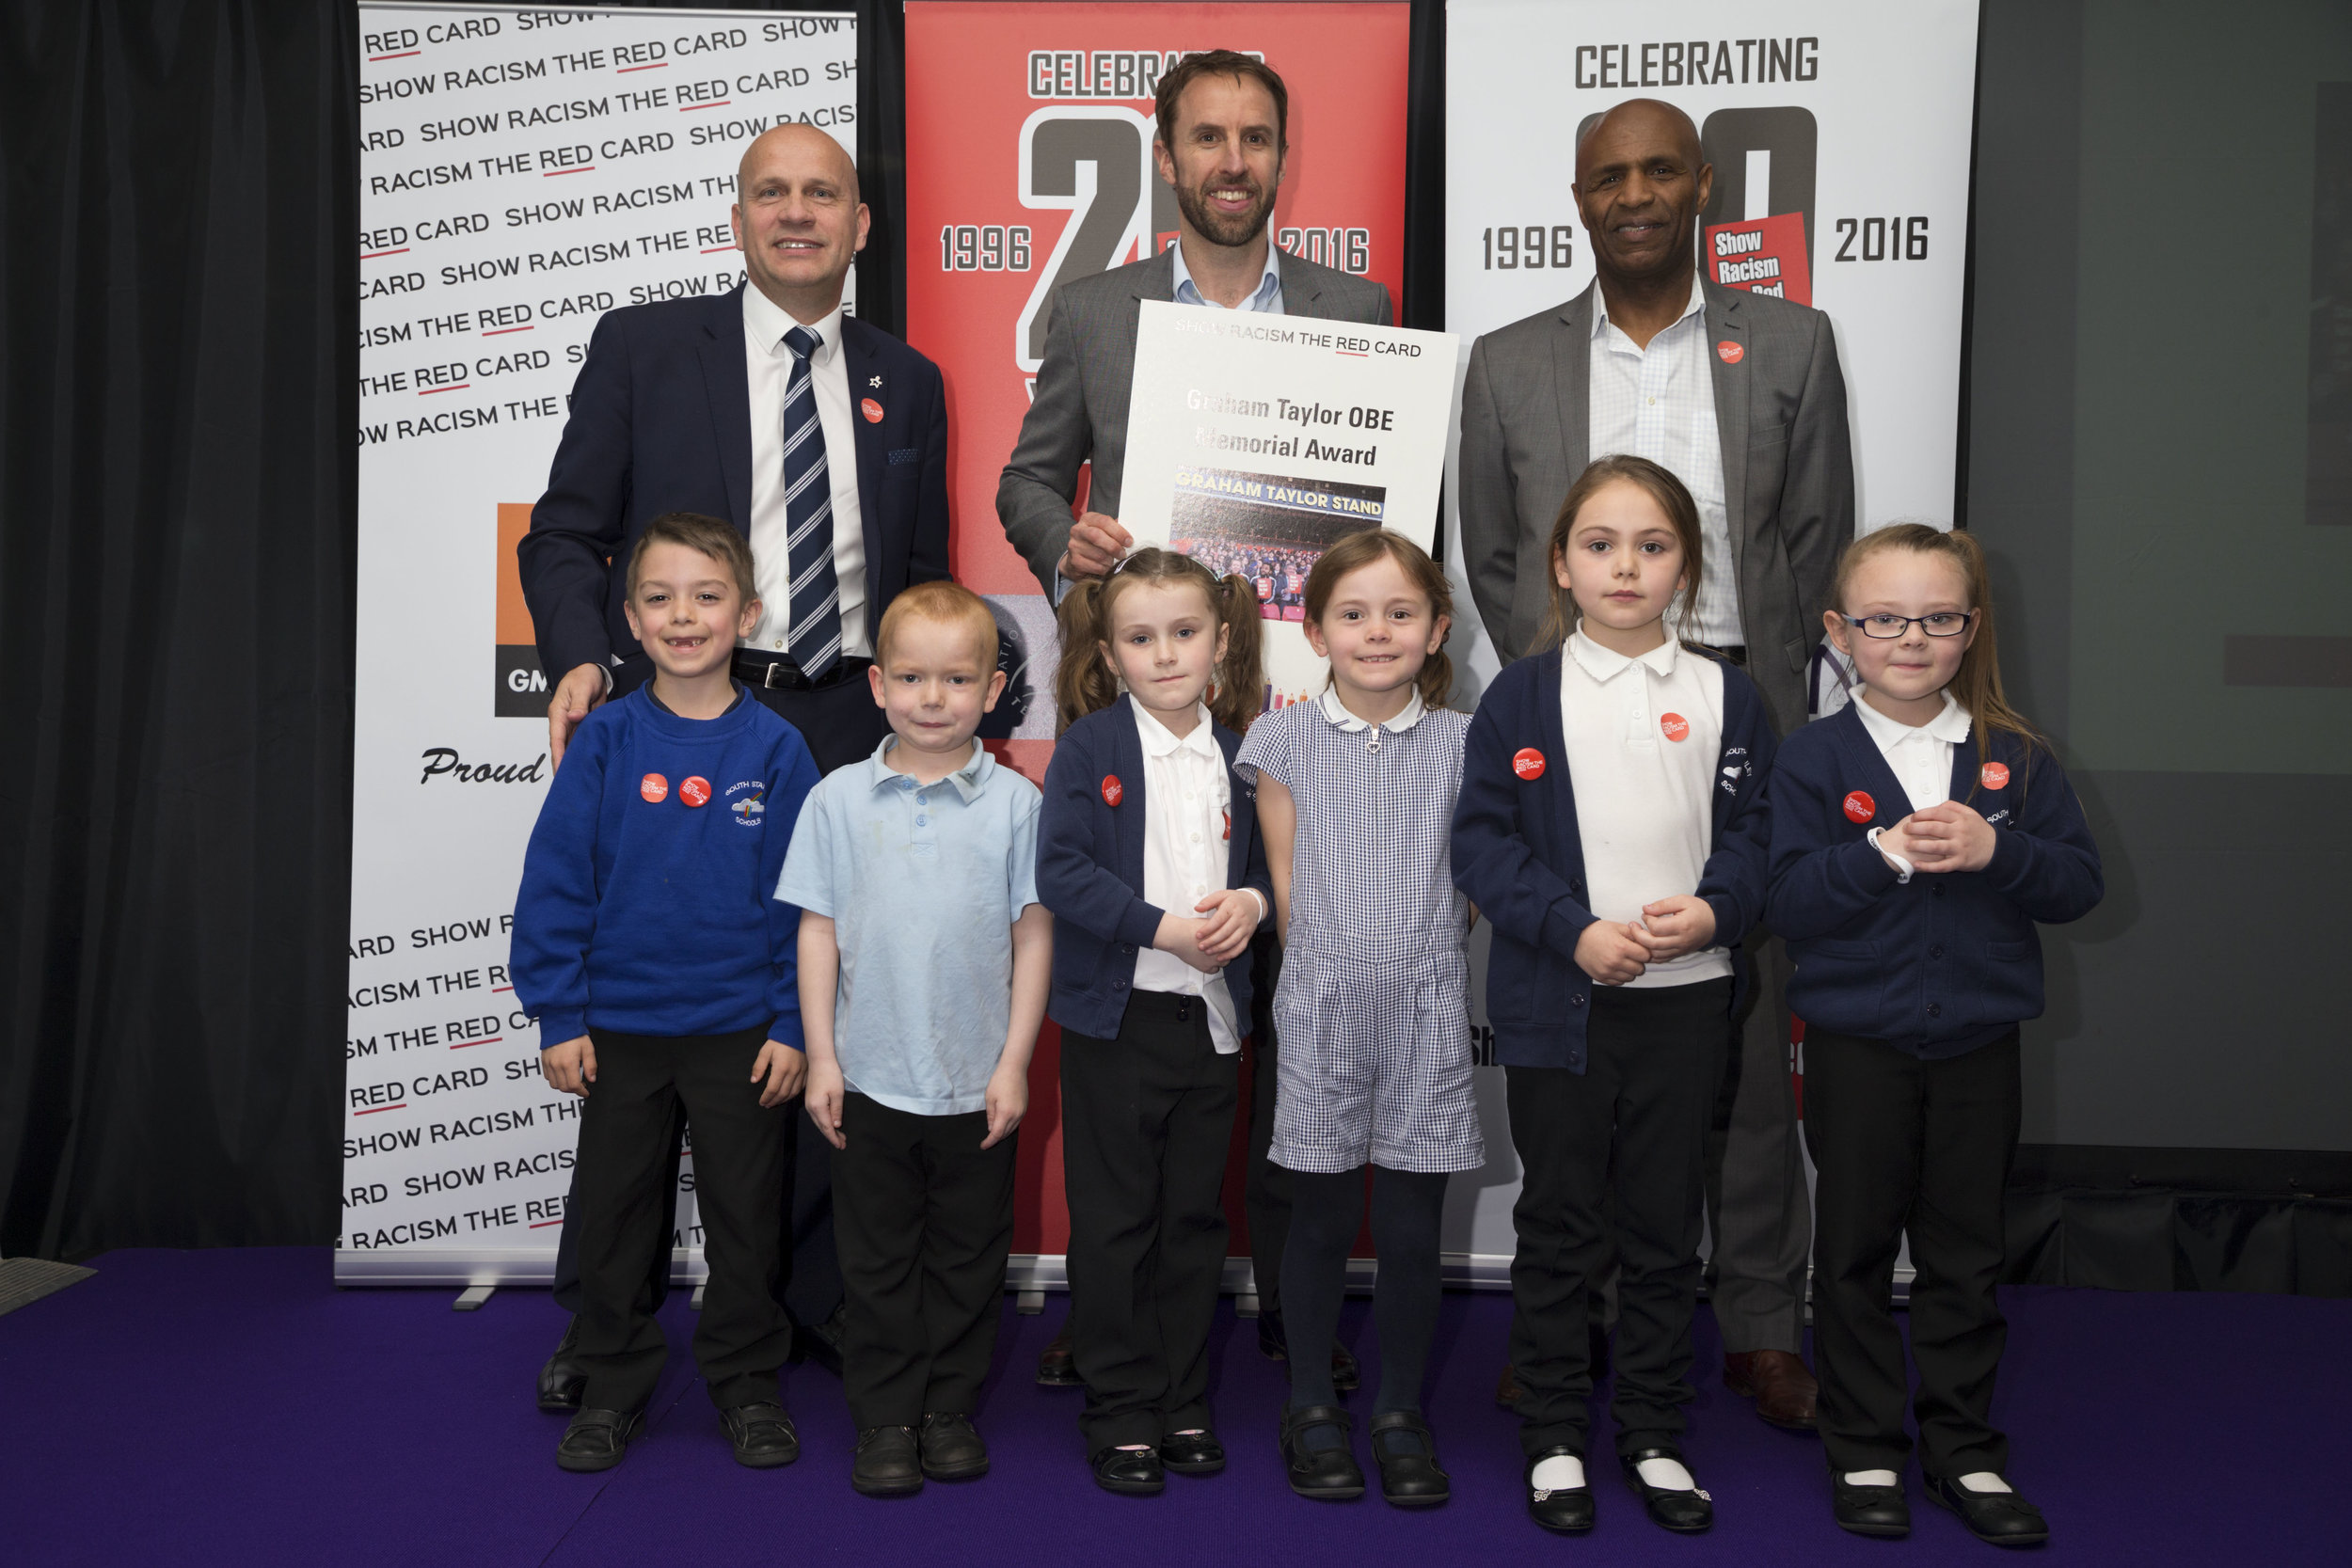 Young people from South Stanley Infants win Graham Taylor Memorial Award, with John Hudson, Gareth Southgate and Luther Blissett